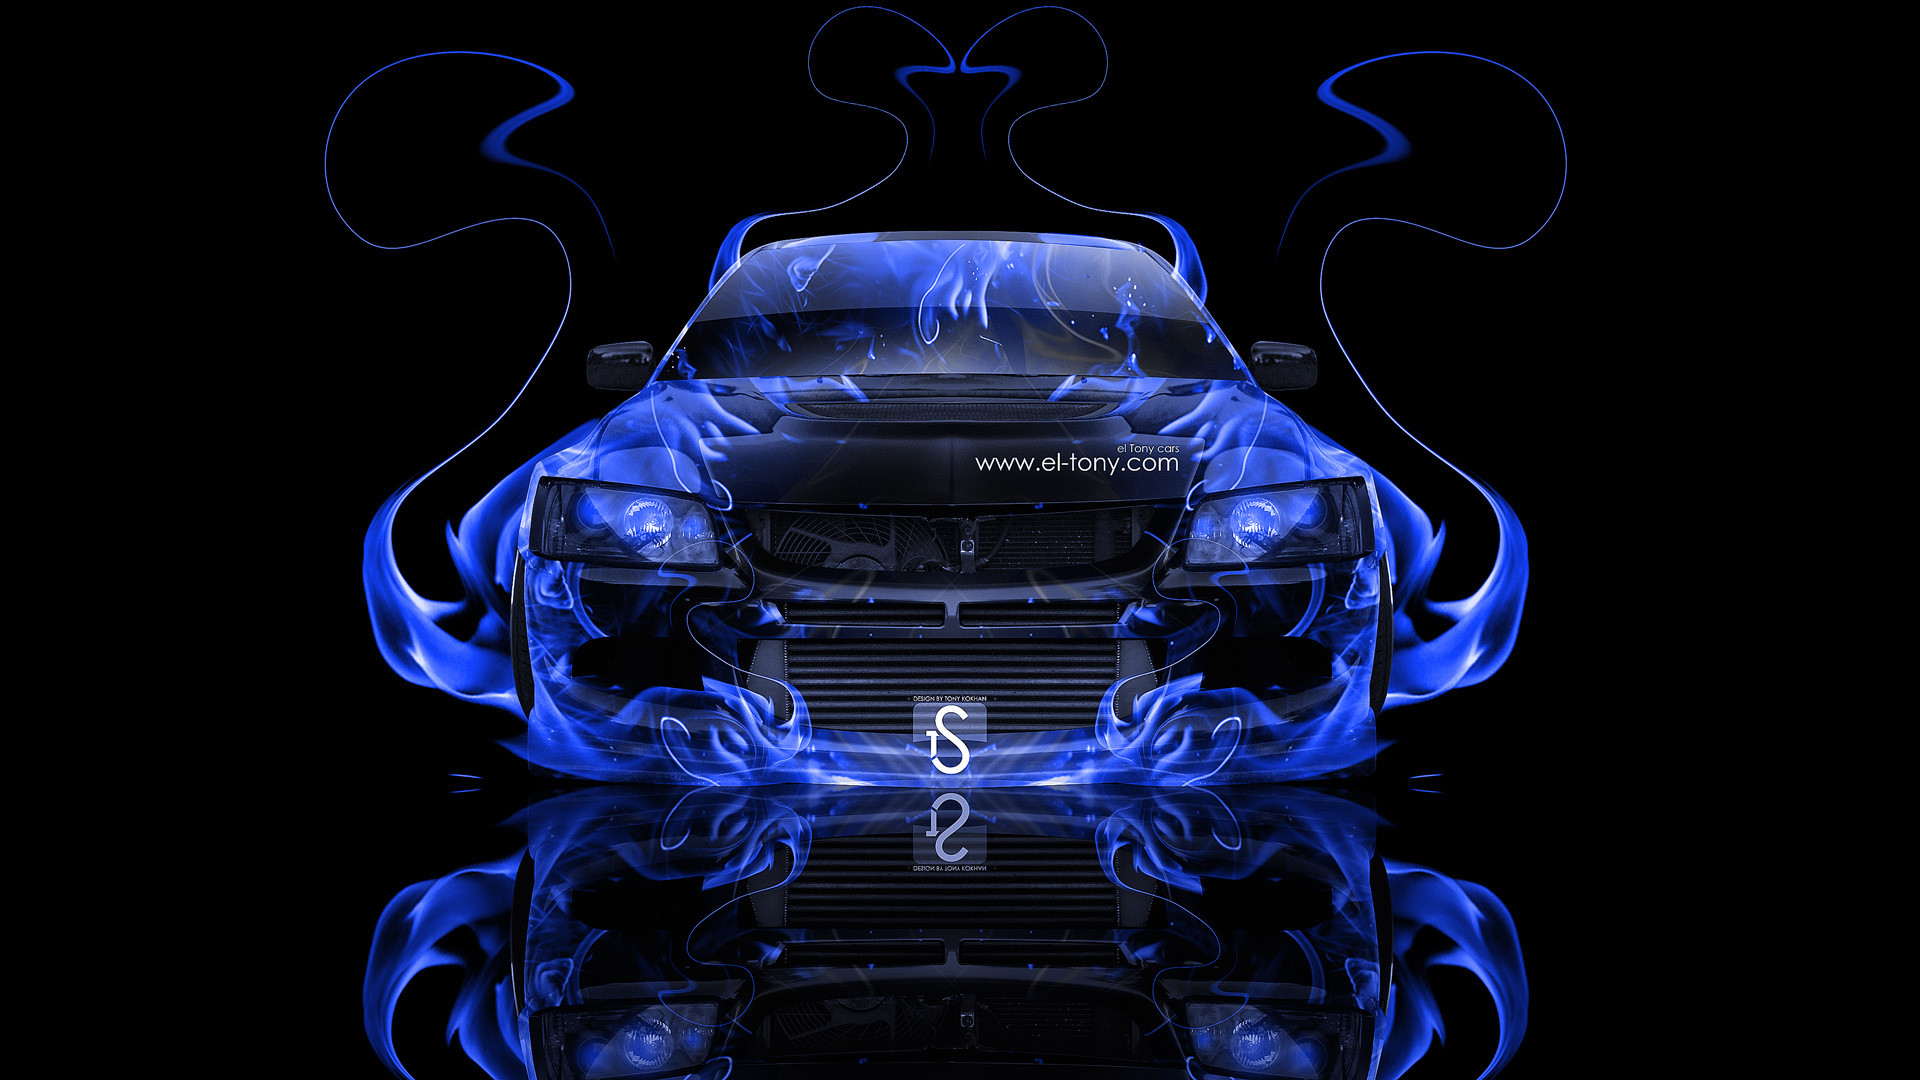 Mitsubishi Lancer Evolution 8 Jdm Blue Fire Abstract